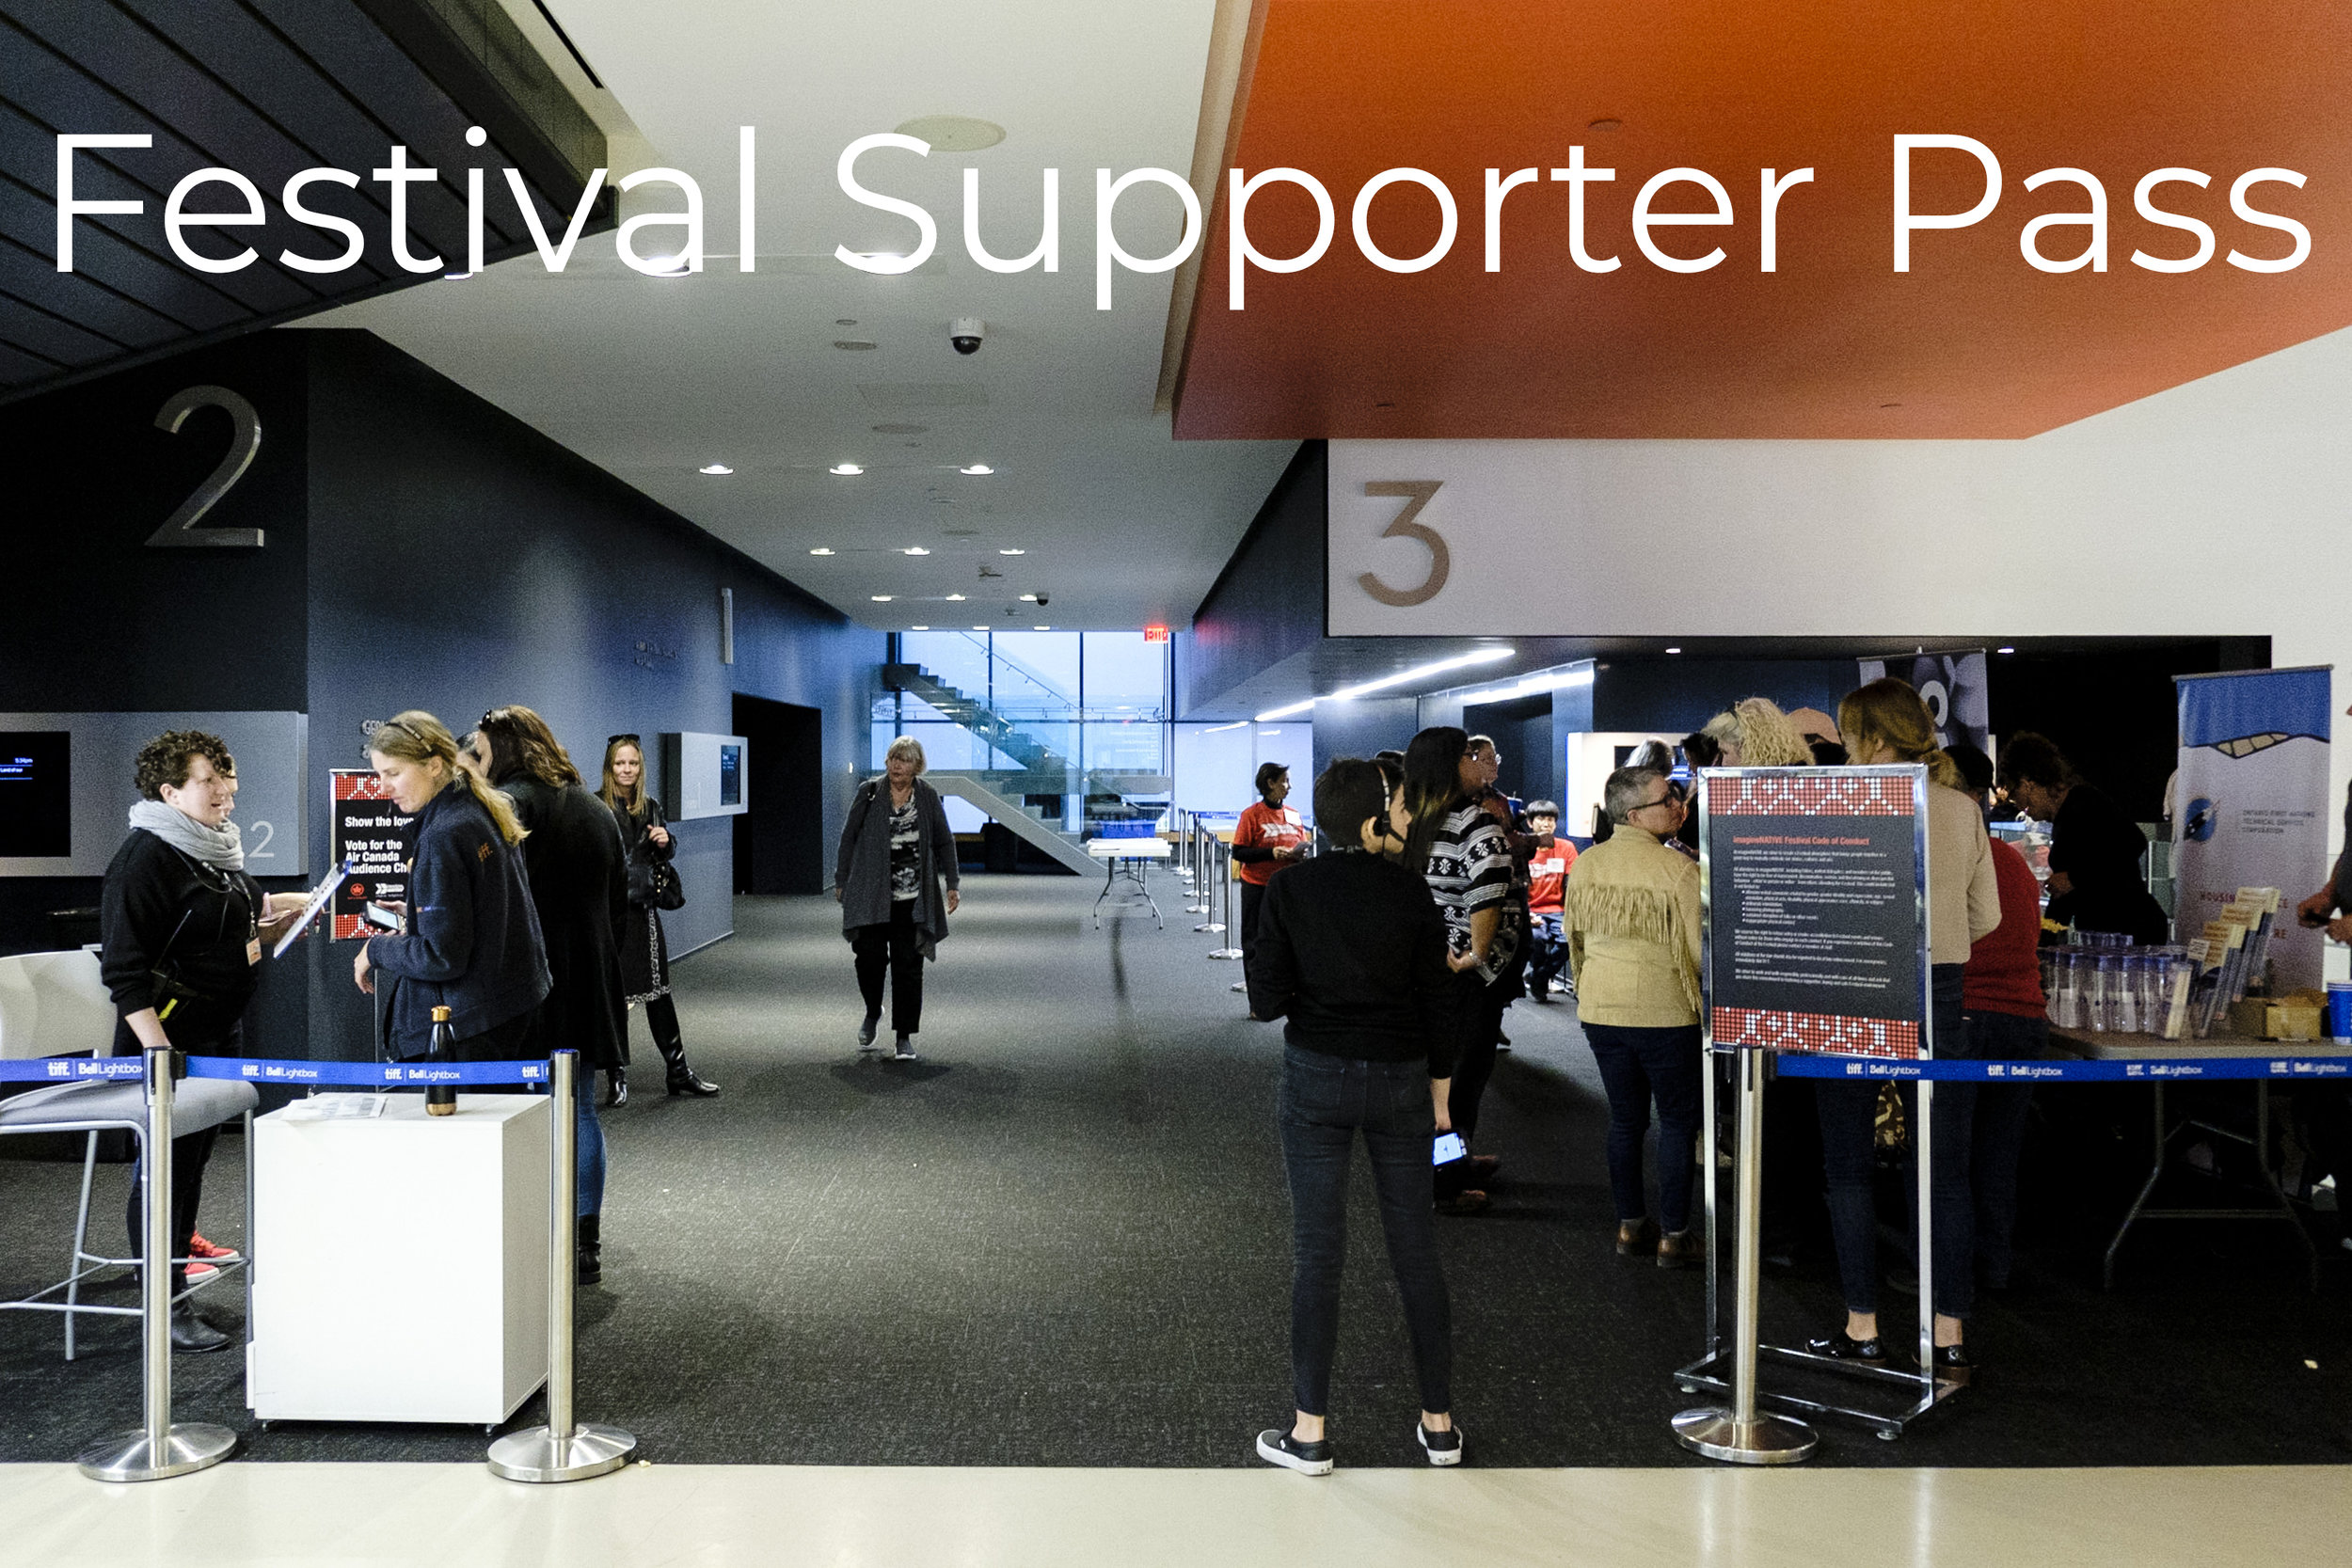 Festival Supporter Pass$250 - Great for film lovers and those who want to give something more!Festival Supporter Pass gives you access to:· Tax receipt for $150· 1 ticket per film screening, including Opening & Closing Night Galas· The Beat music night· 20th Birthday PartyPasses are Not Transferable and tickets are based on availability.